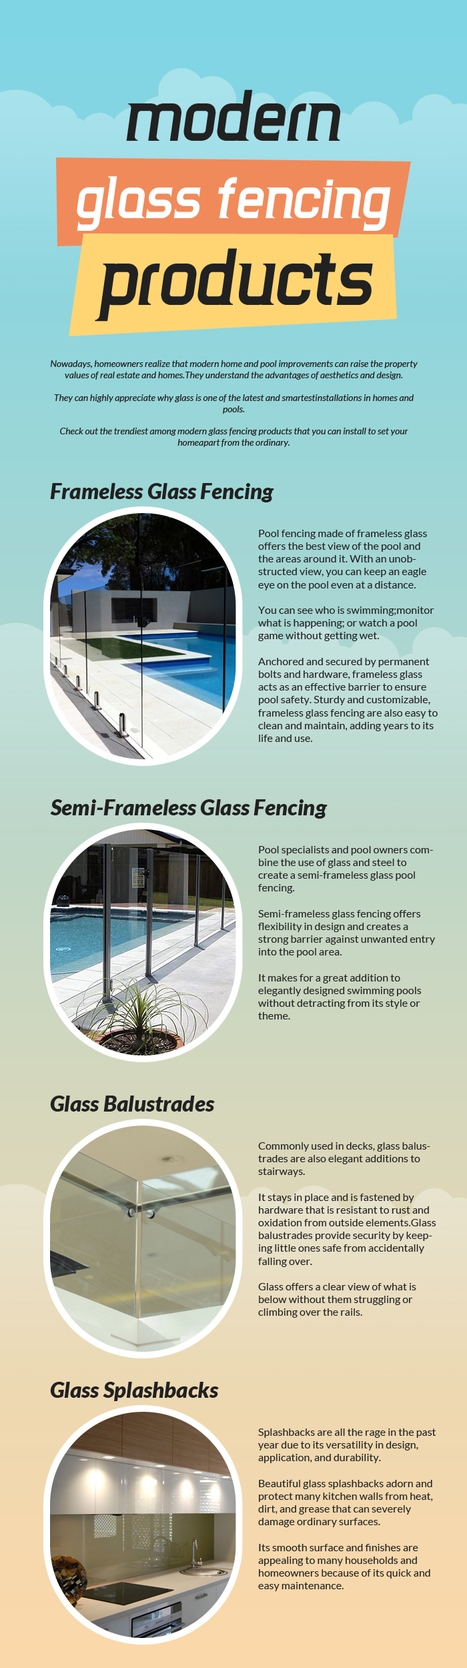 Modern Glass Fencing Products | Glass Fencing | Scoop.it